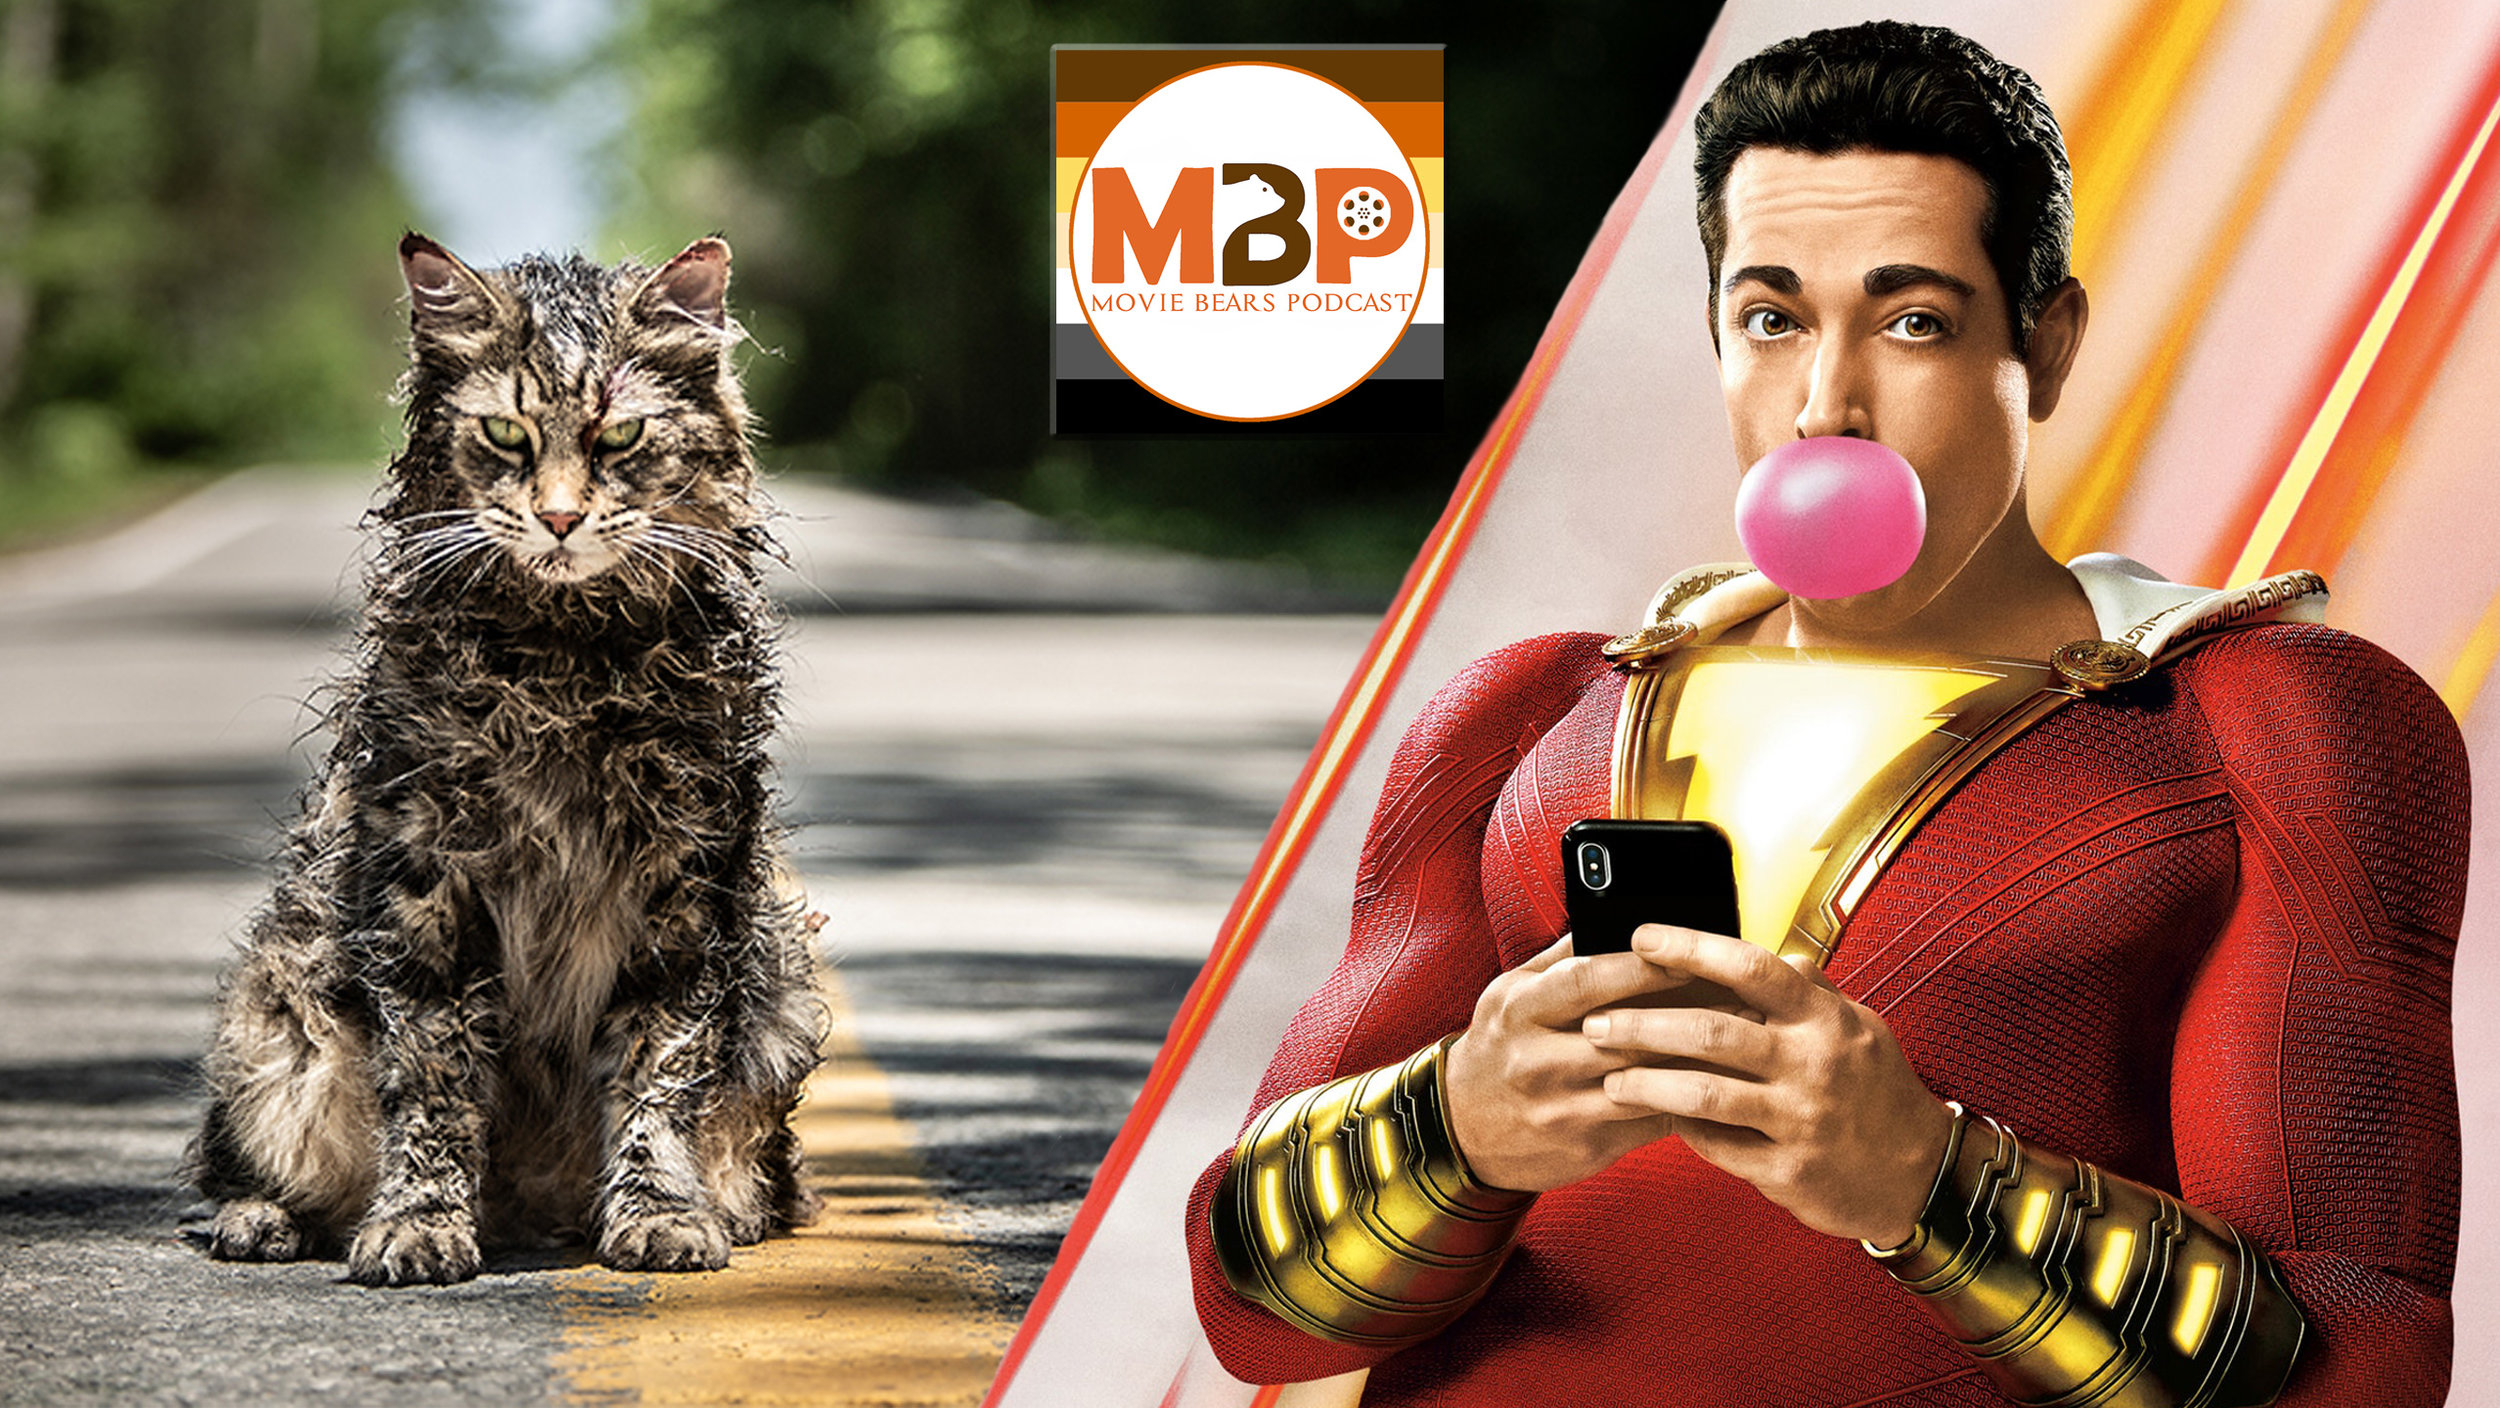 M   BP e317 -    'Shazam!' and 'Pet Sematary'    (4/9/19)    Another Movie Bears Podcast double-review double feature! On this episode, we discuss whether #Shazam! is a high-voltage addition to the growing DC cinematic universe. PLUS, does the remake of #PetSematary breathe new life into the classic Stephen King horror story? Or are some things better left dead?